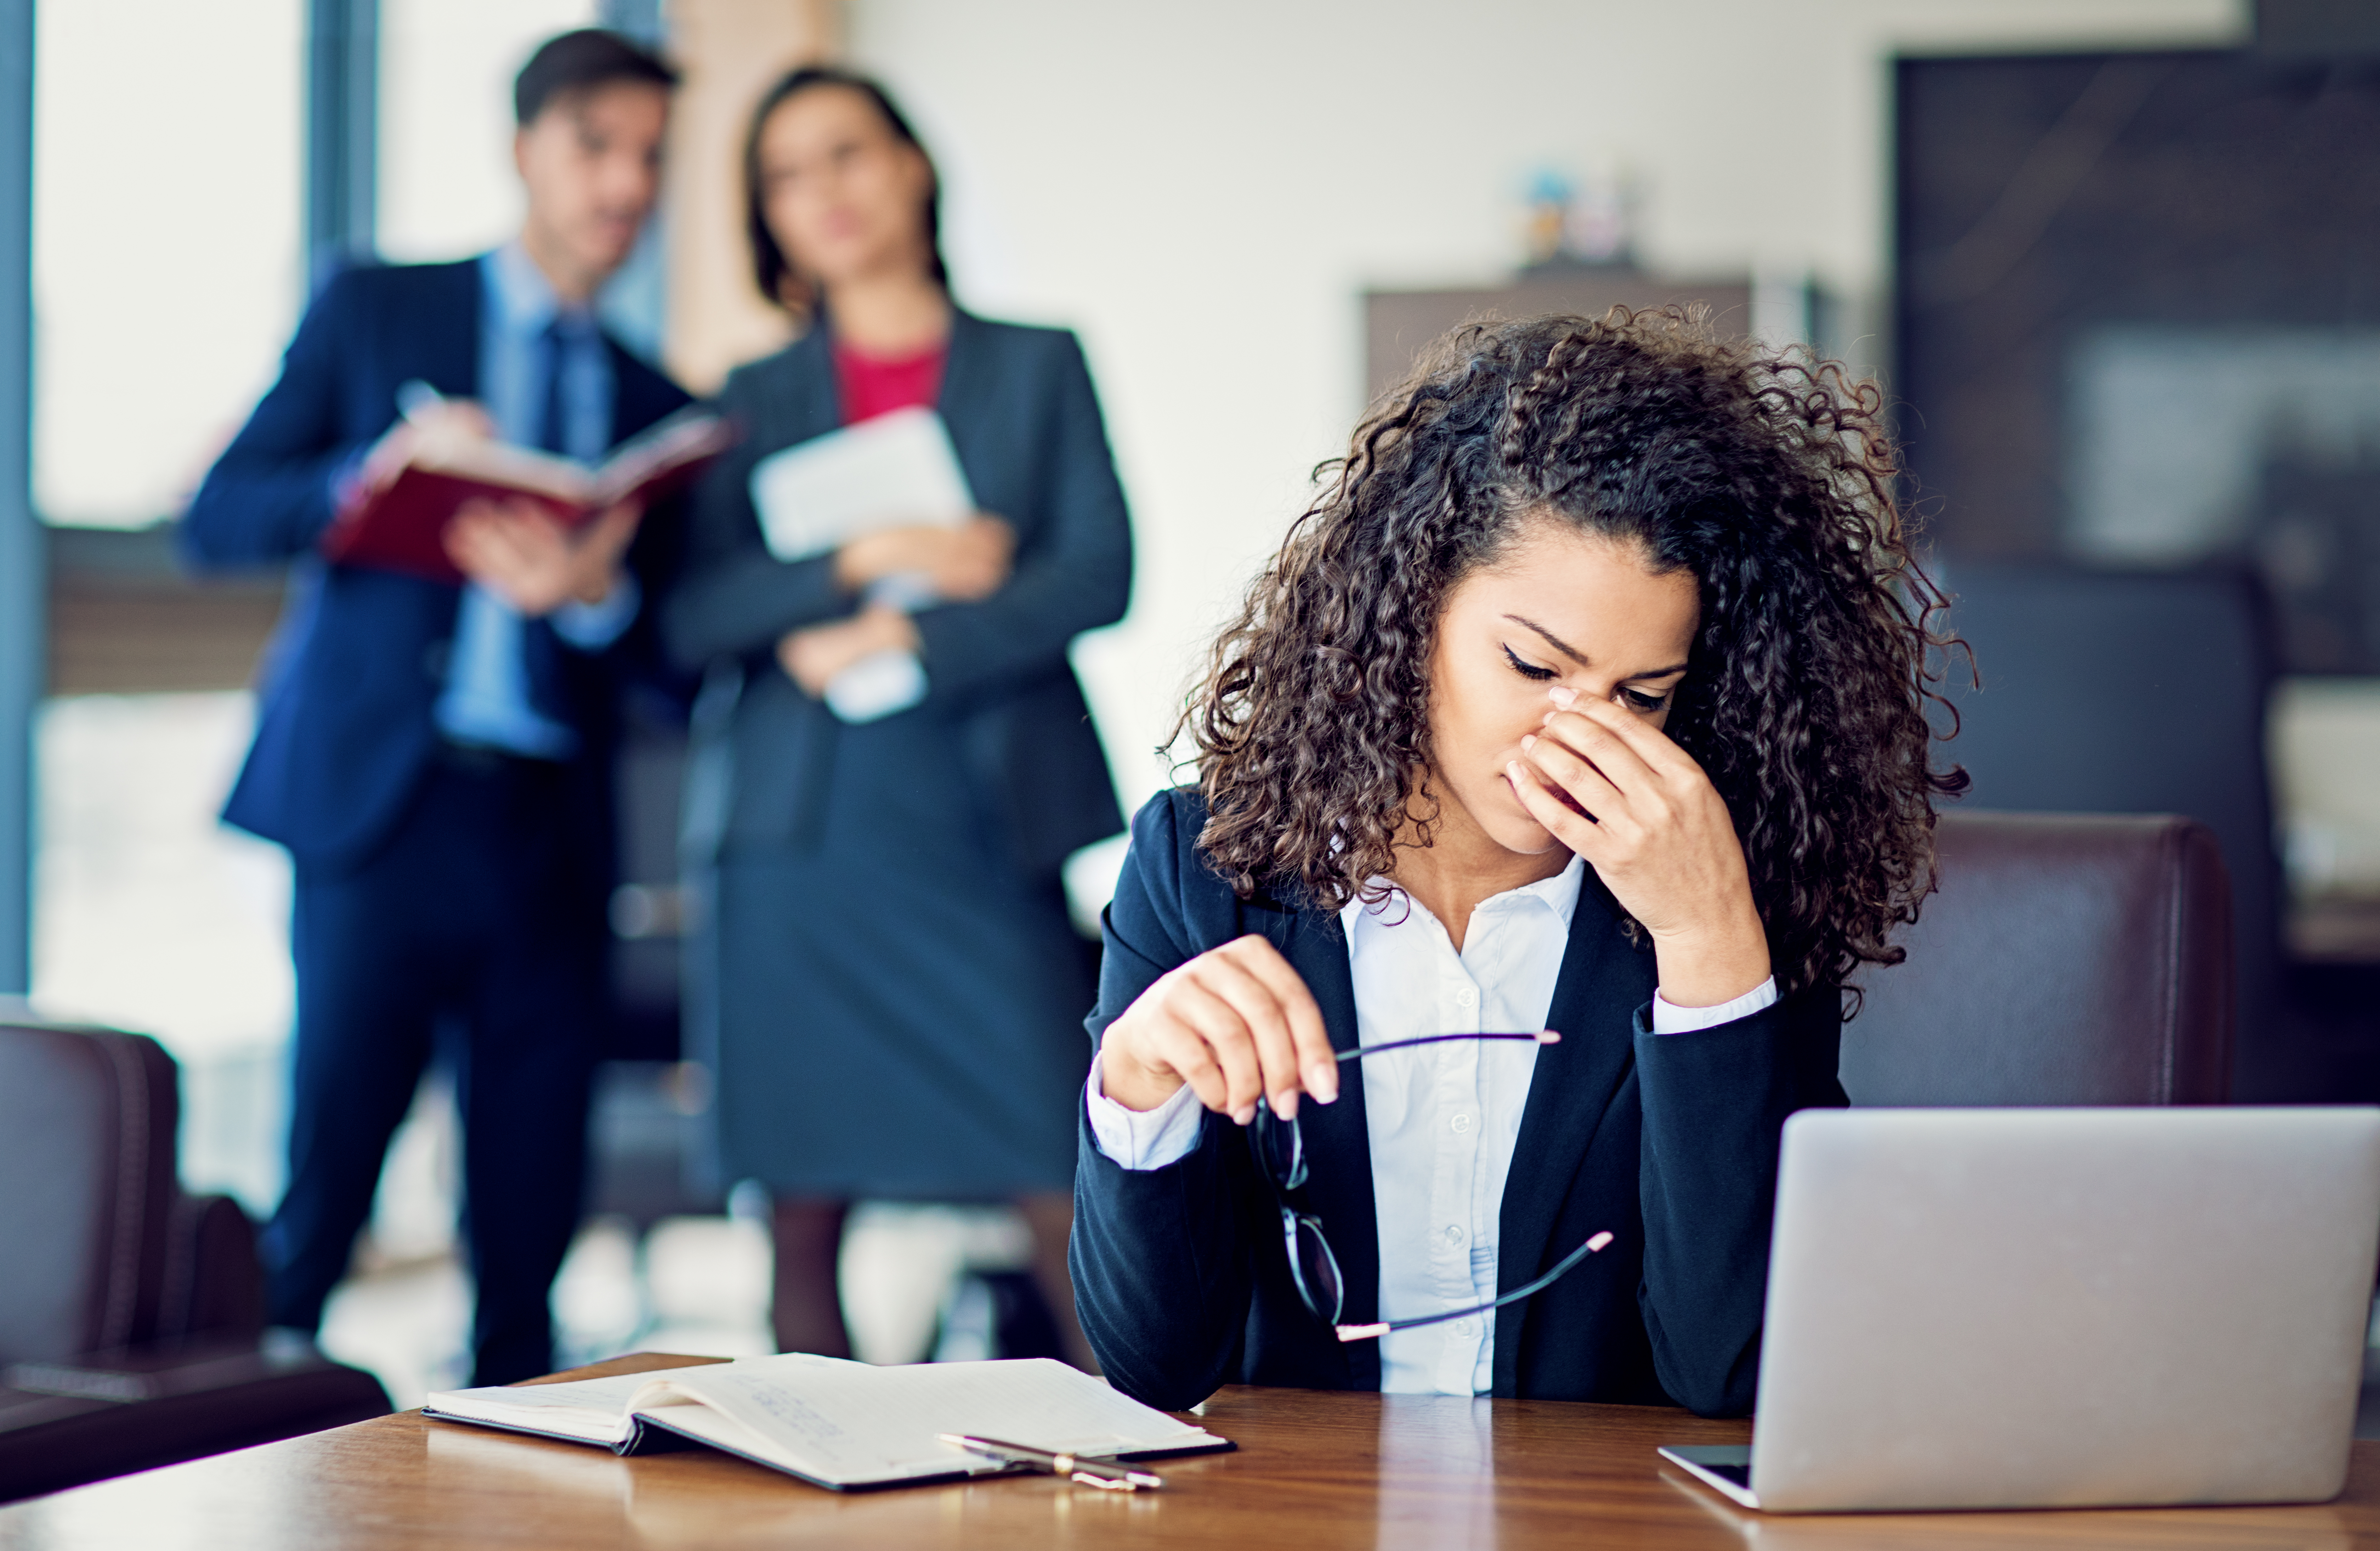 How To Emotionally Deal With Backstabbing Coworkers That Gossip